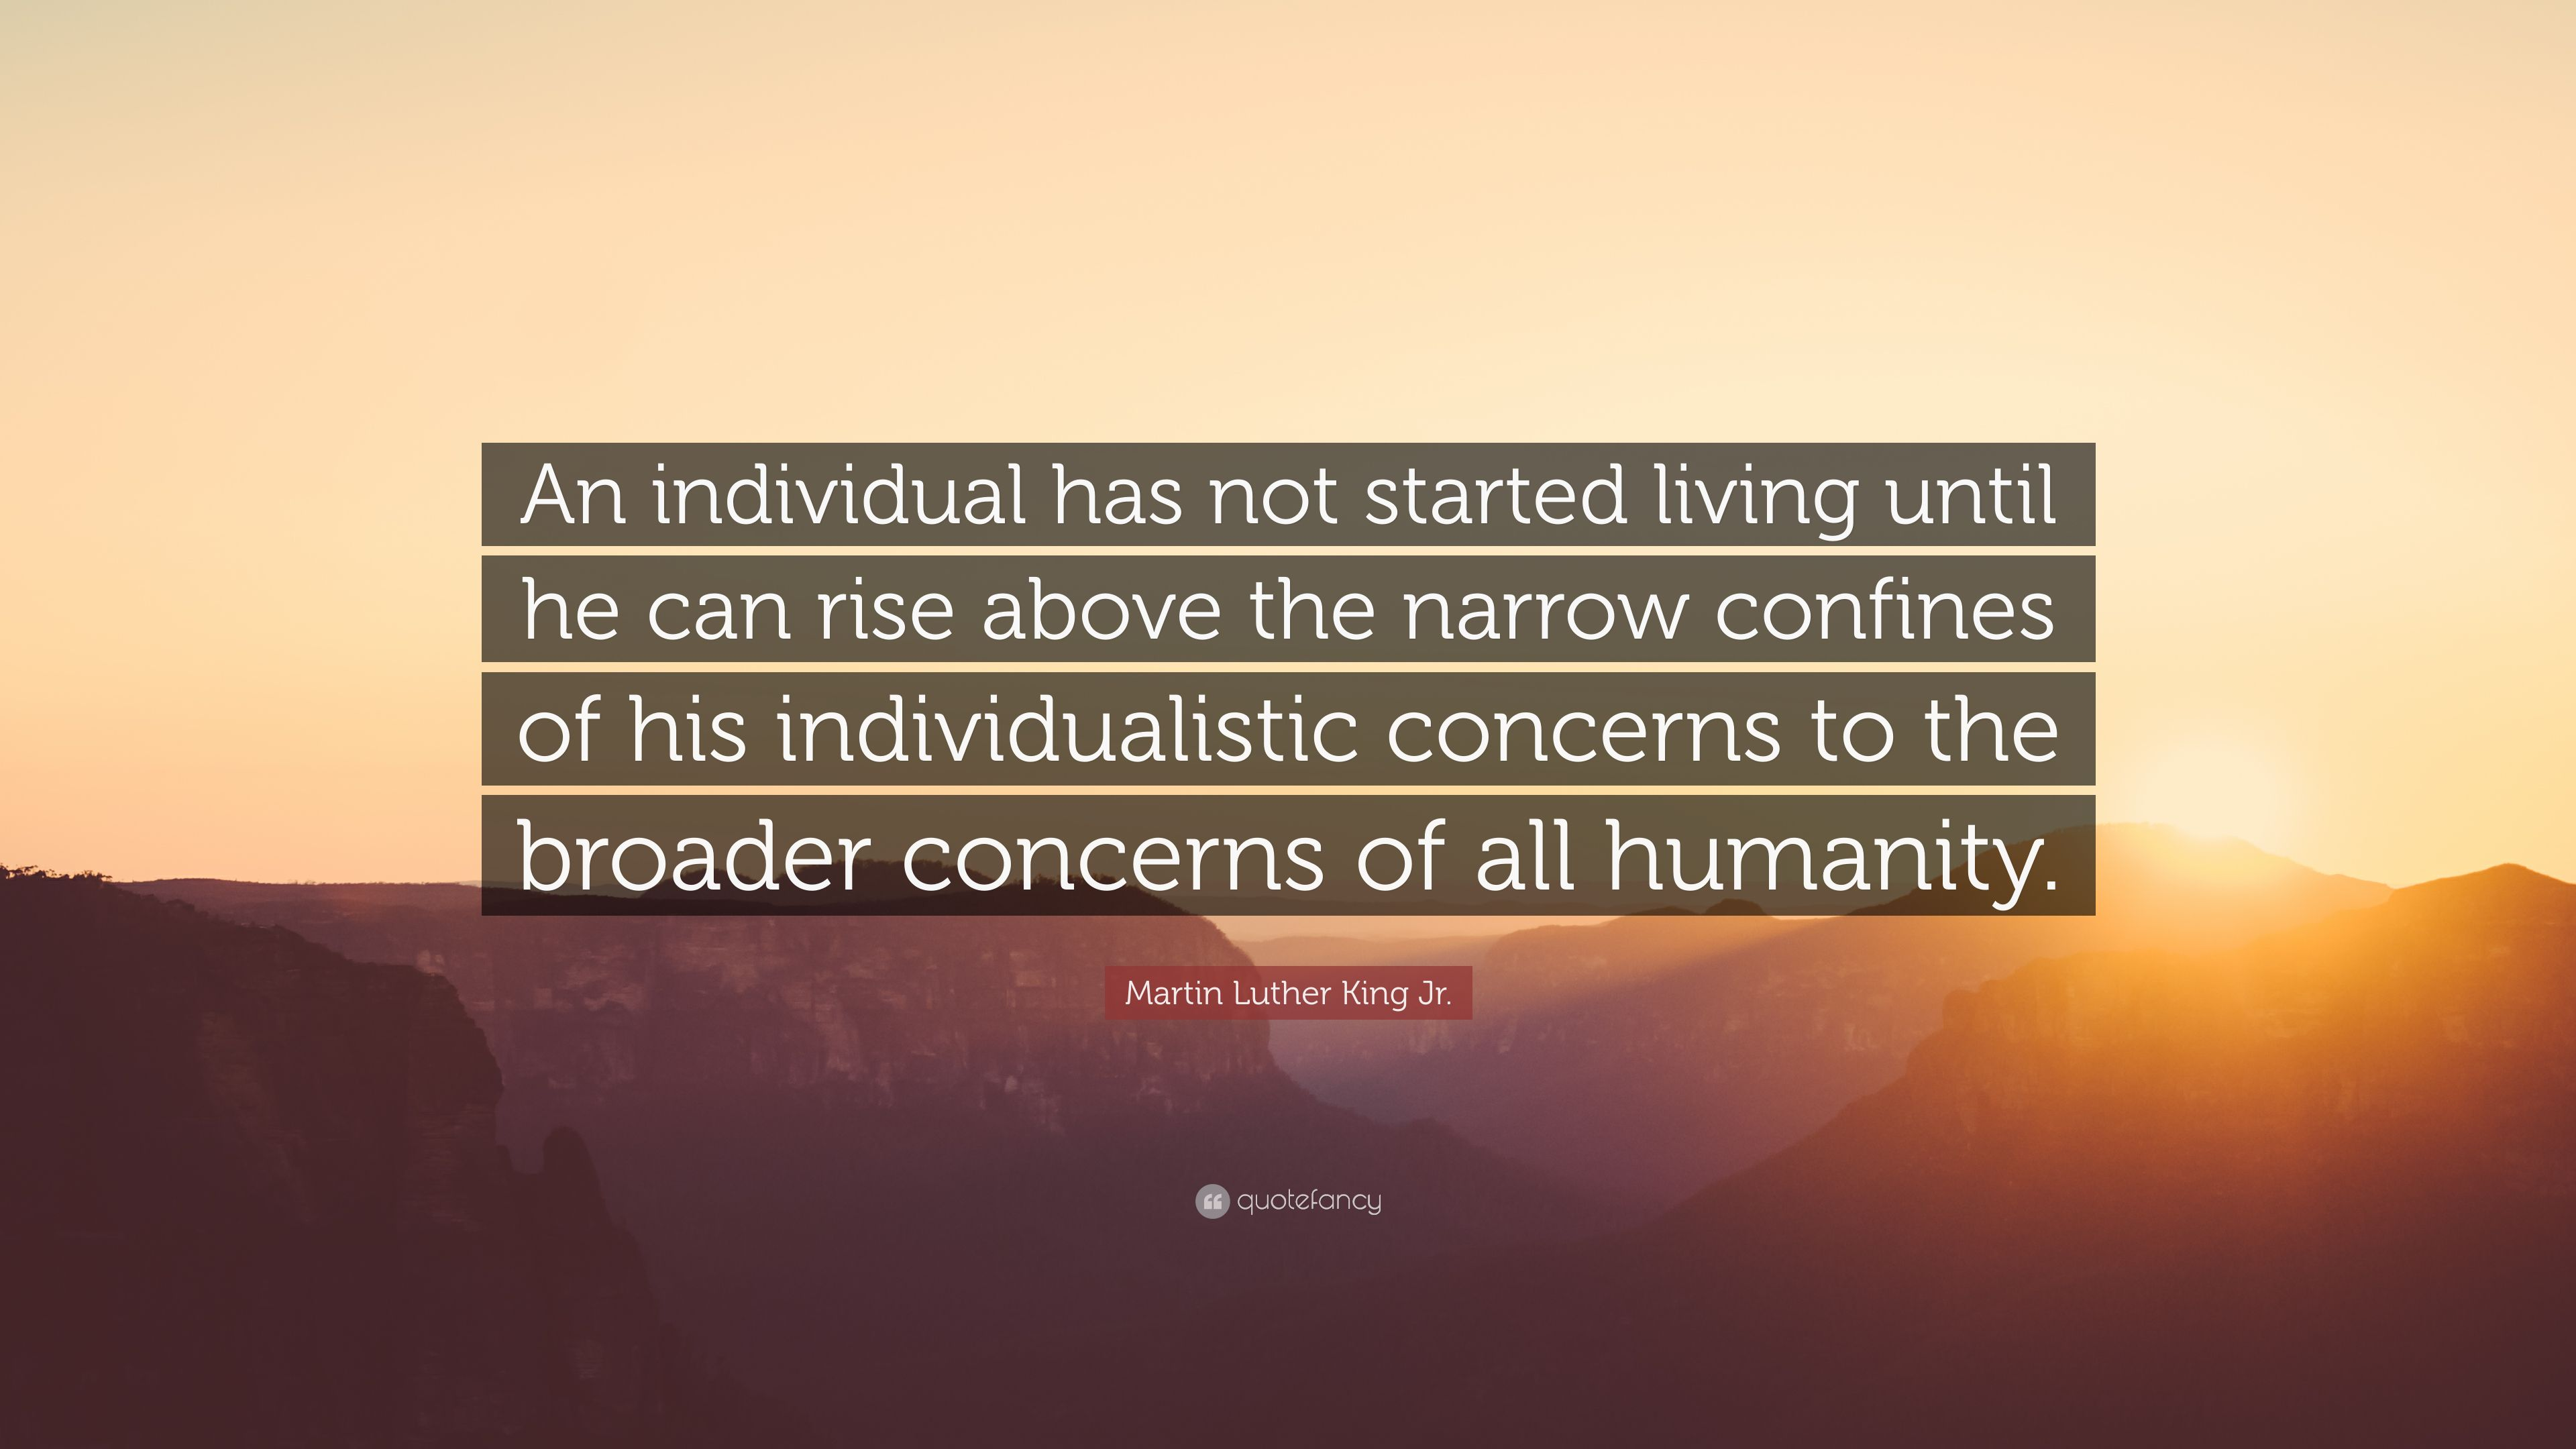 About Dr. King